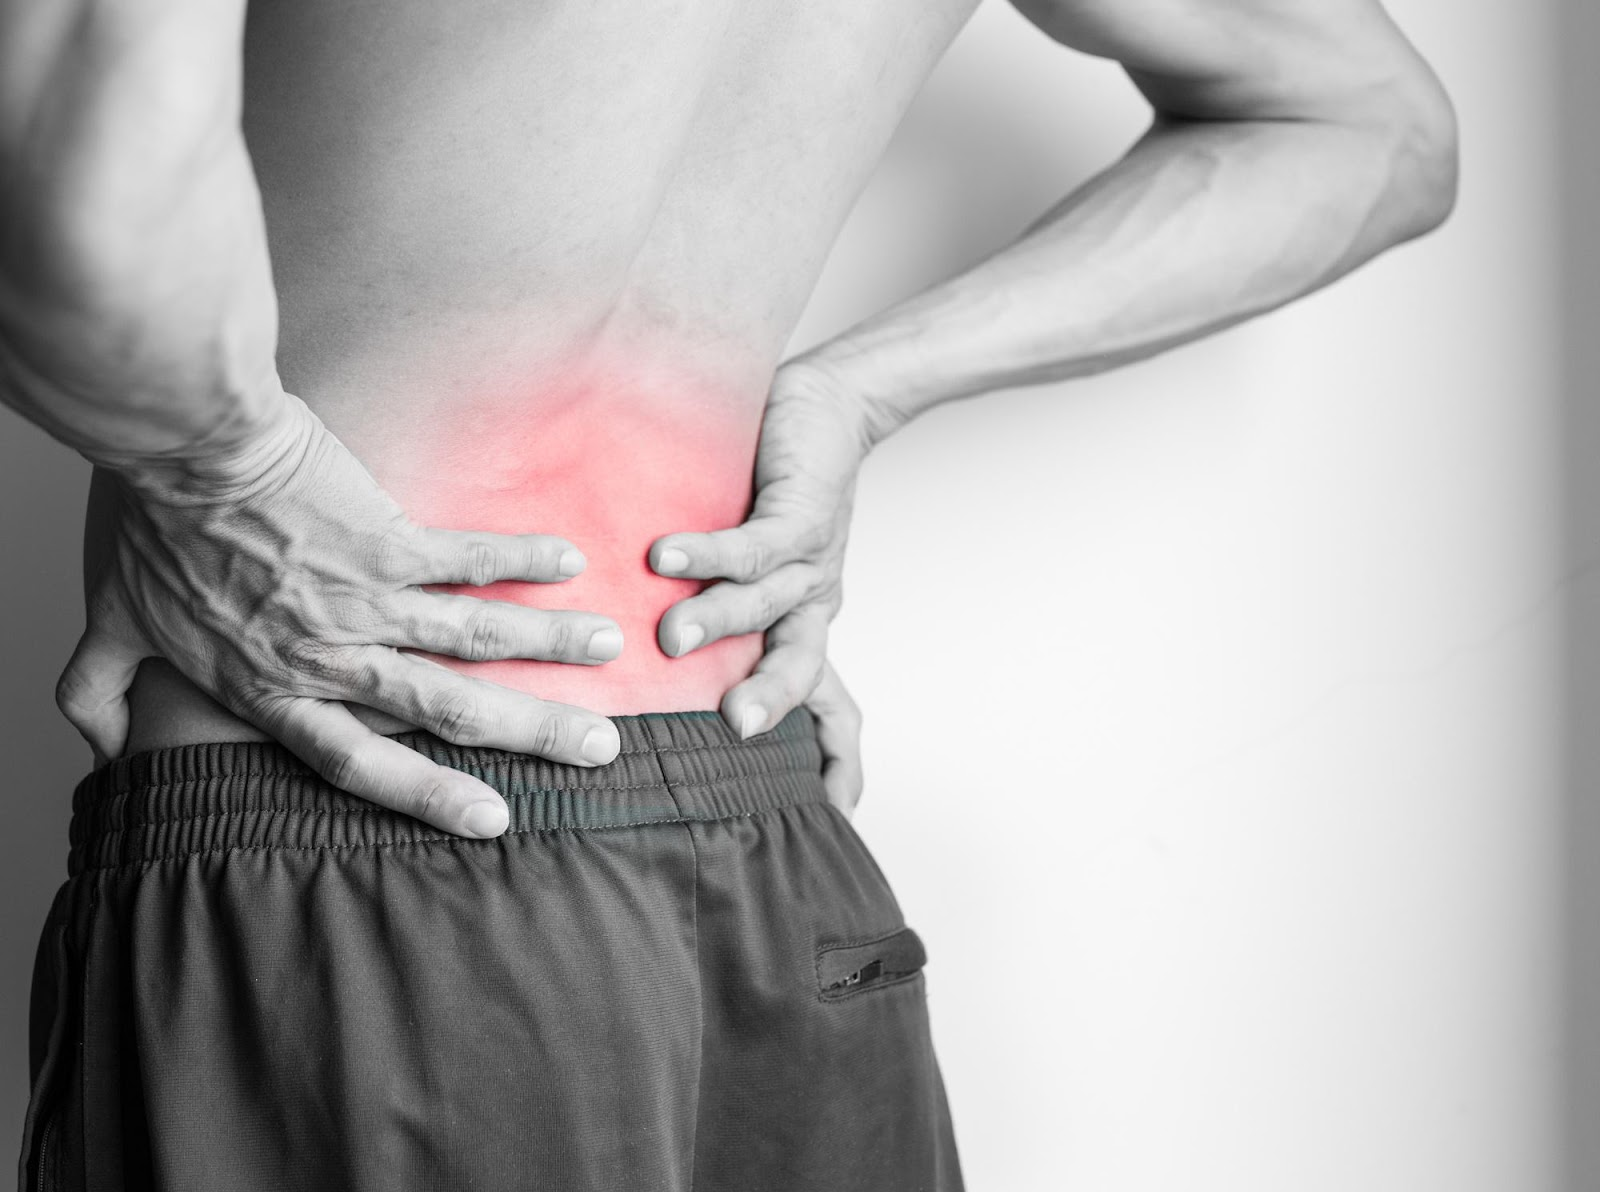 Foods that Help Fight Inflammatory Back Pain